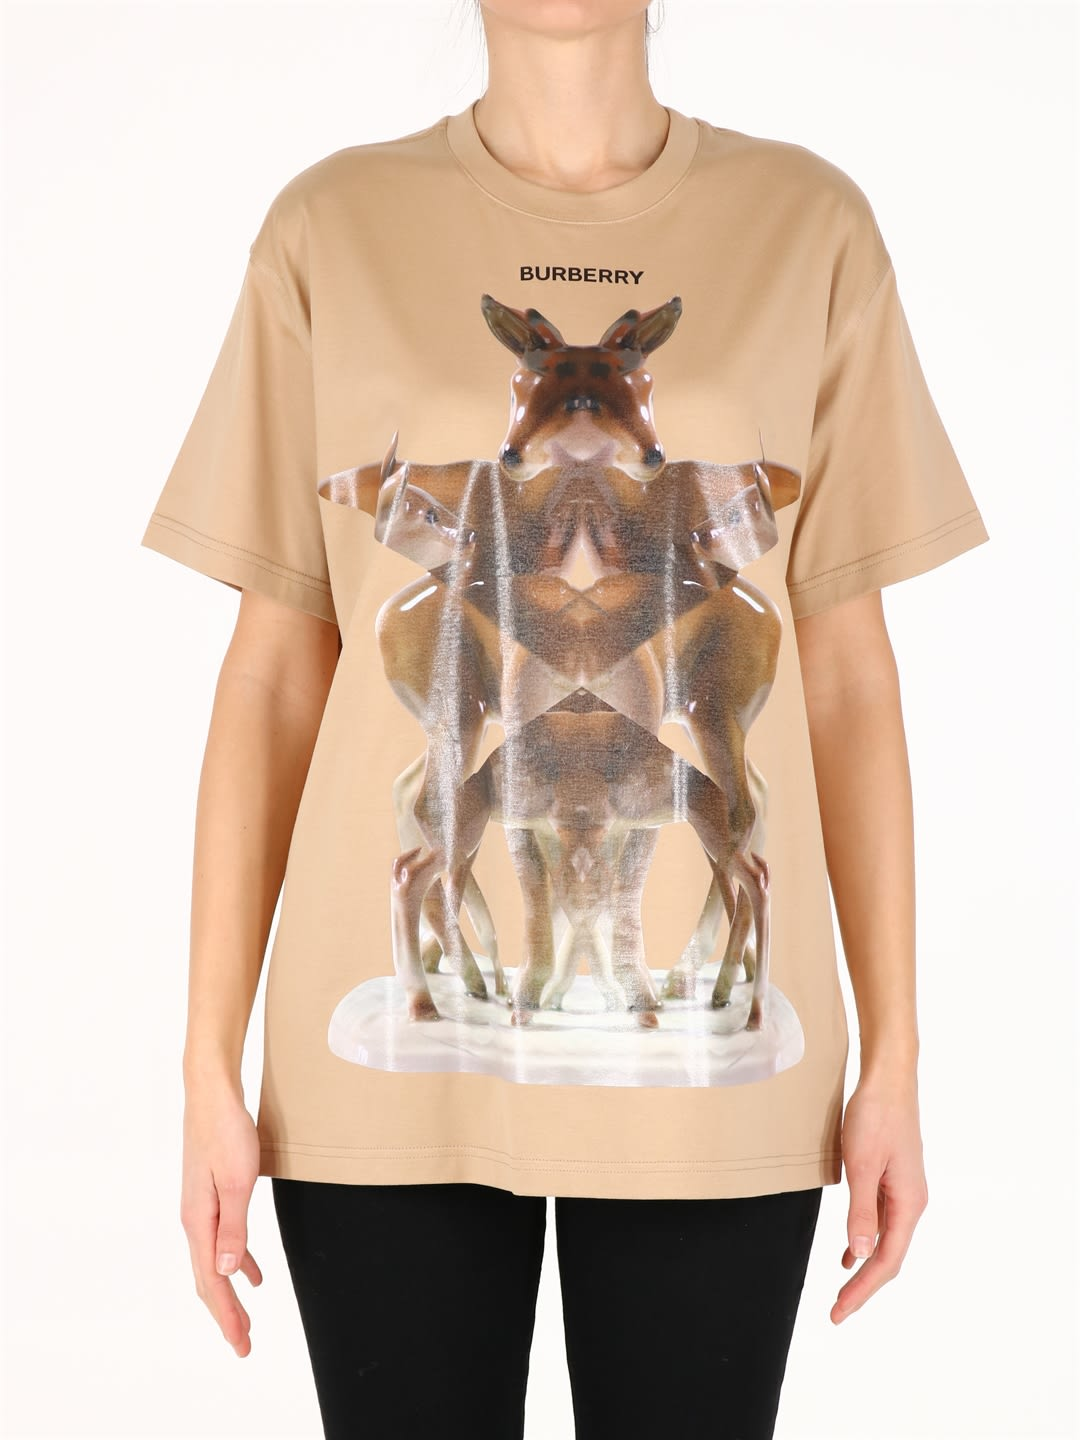 Burberry PRINTED FAWN T-SHIRT BEIGE